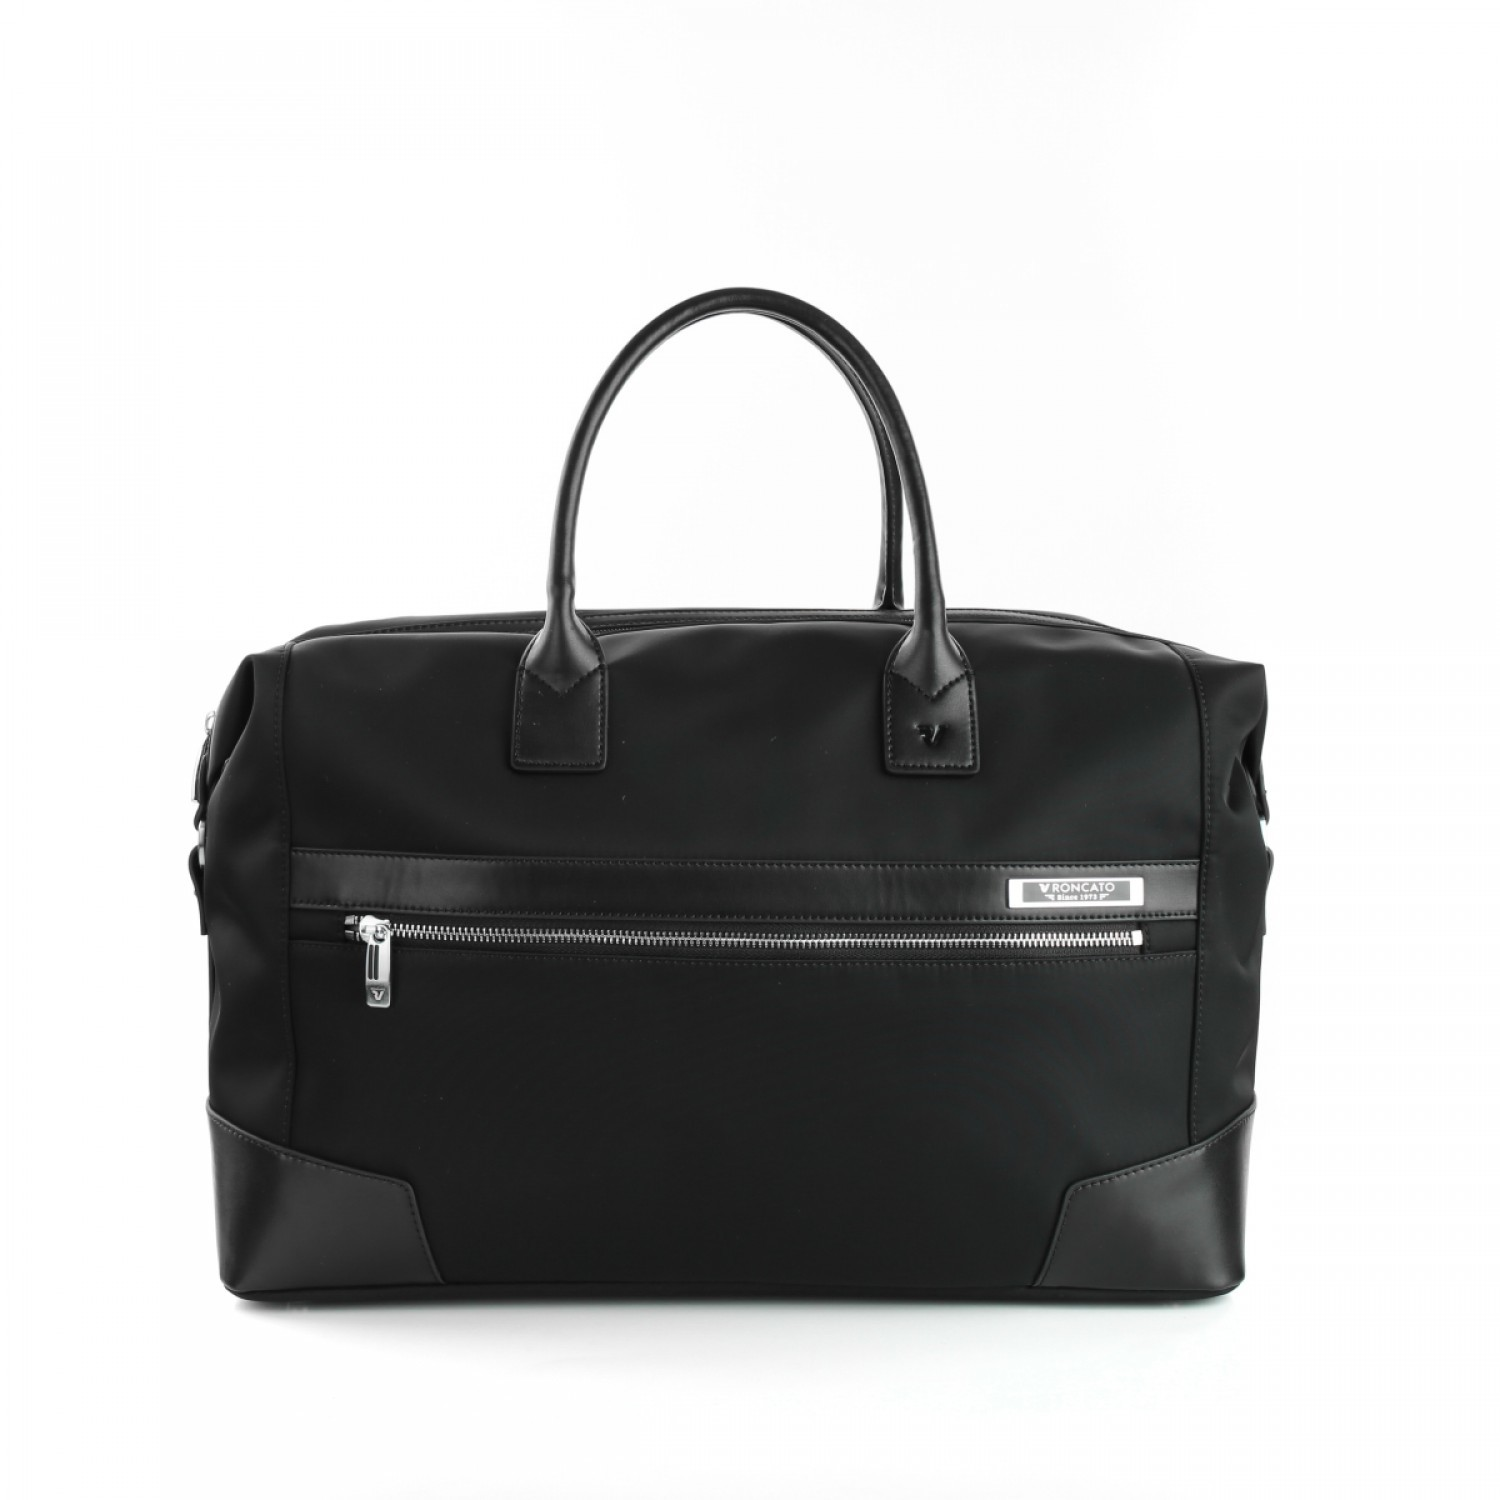 Дорожная сумка Roncato E-LITE Weekend Bag Black